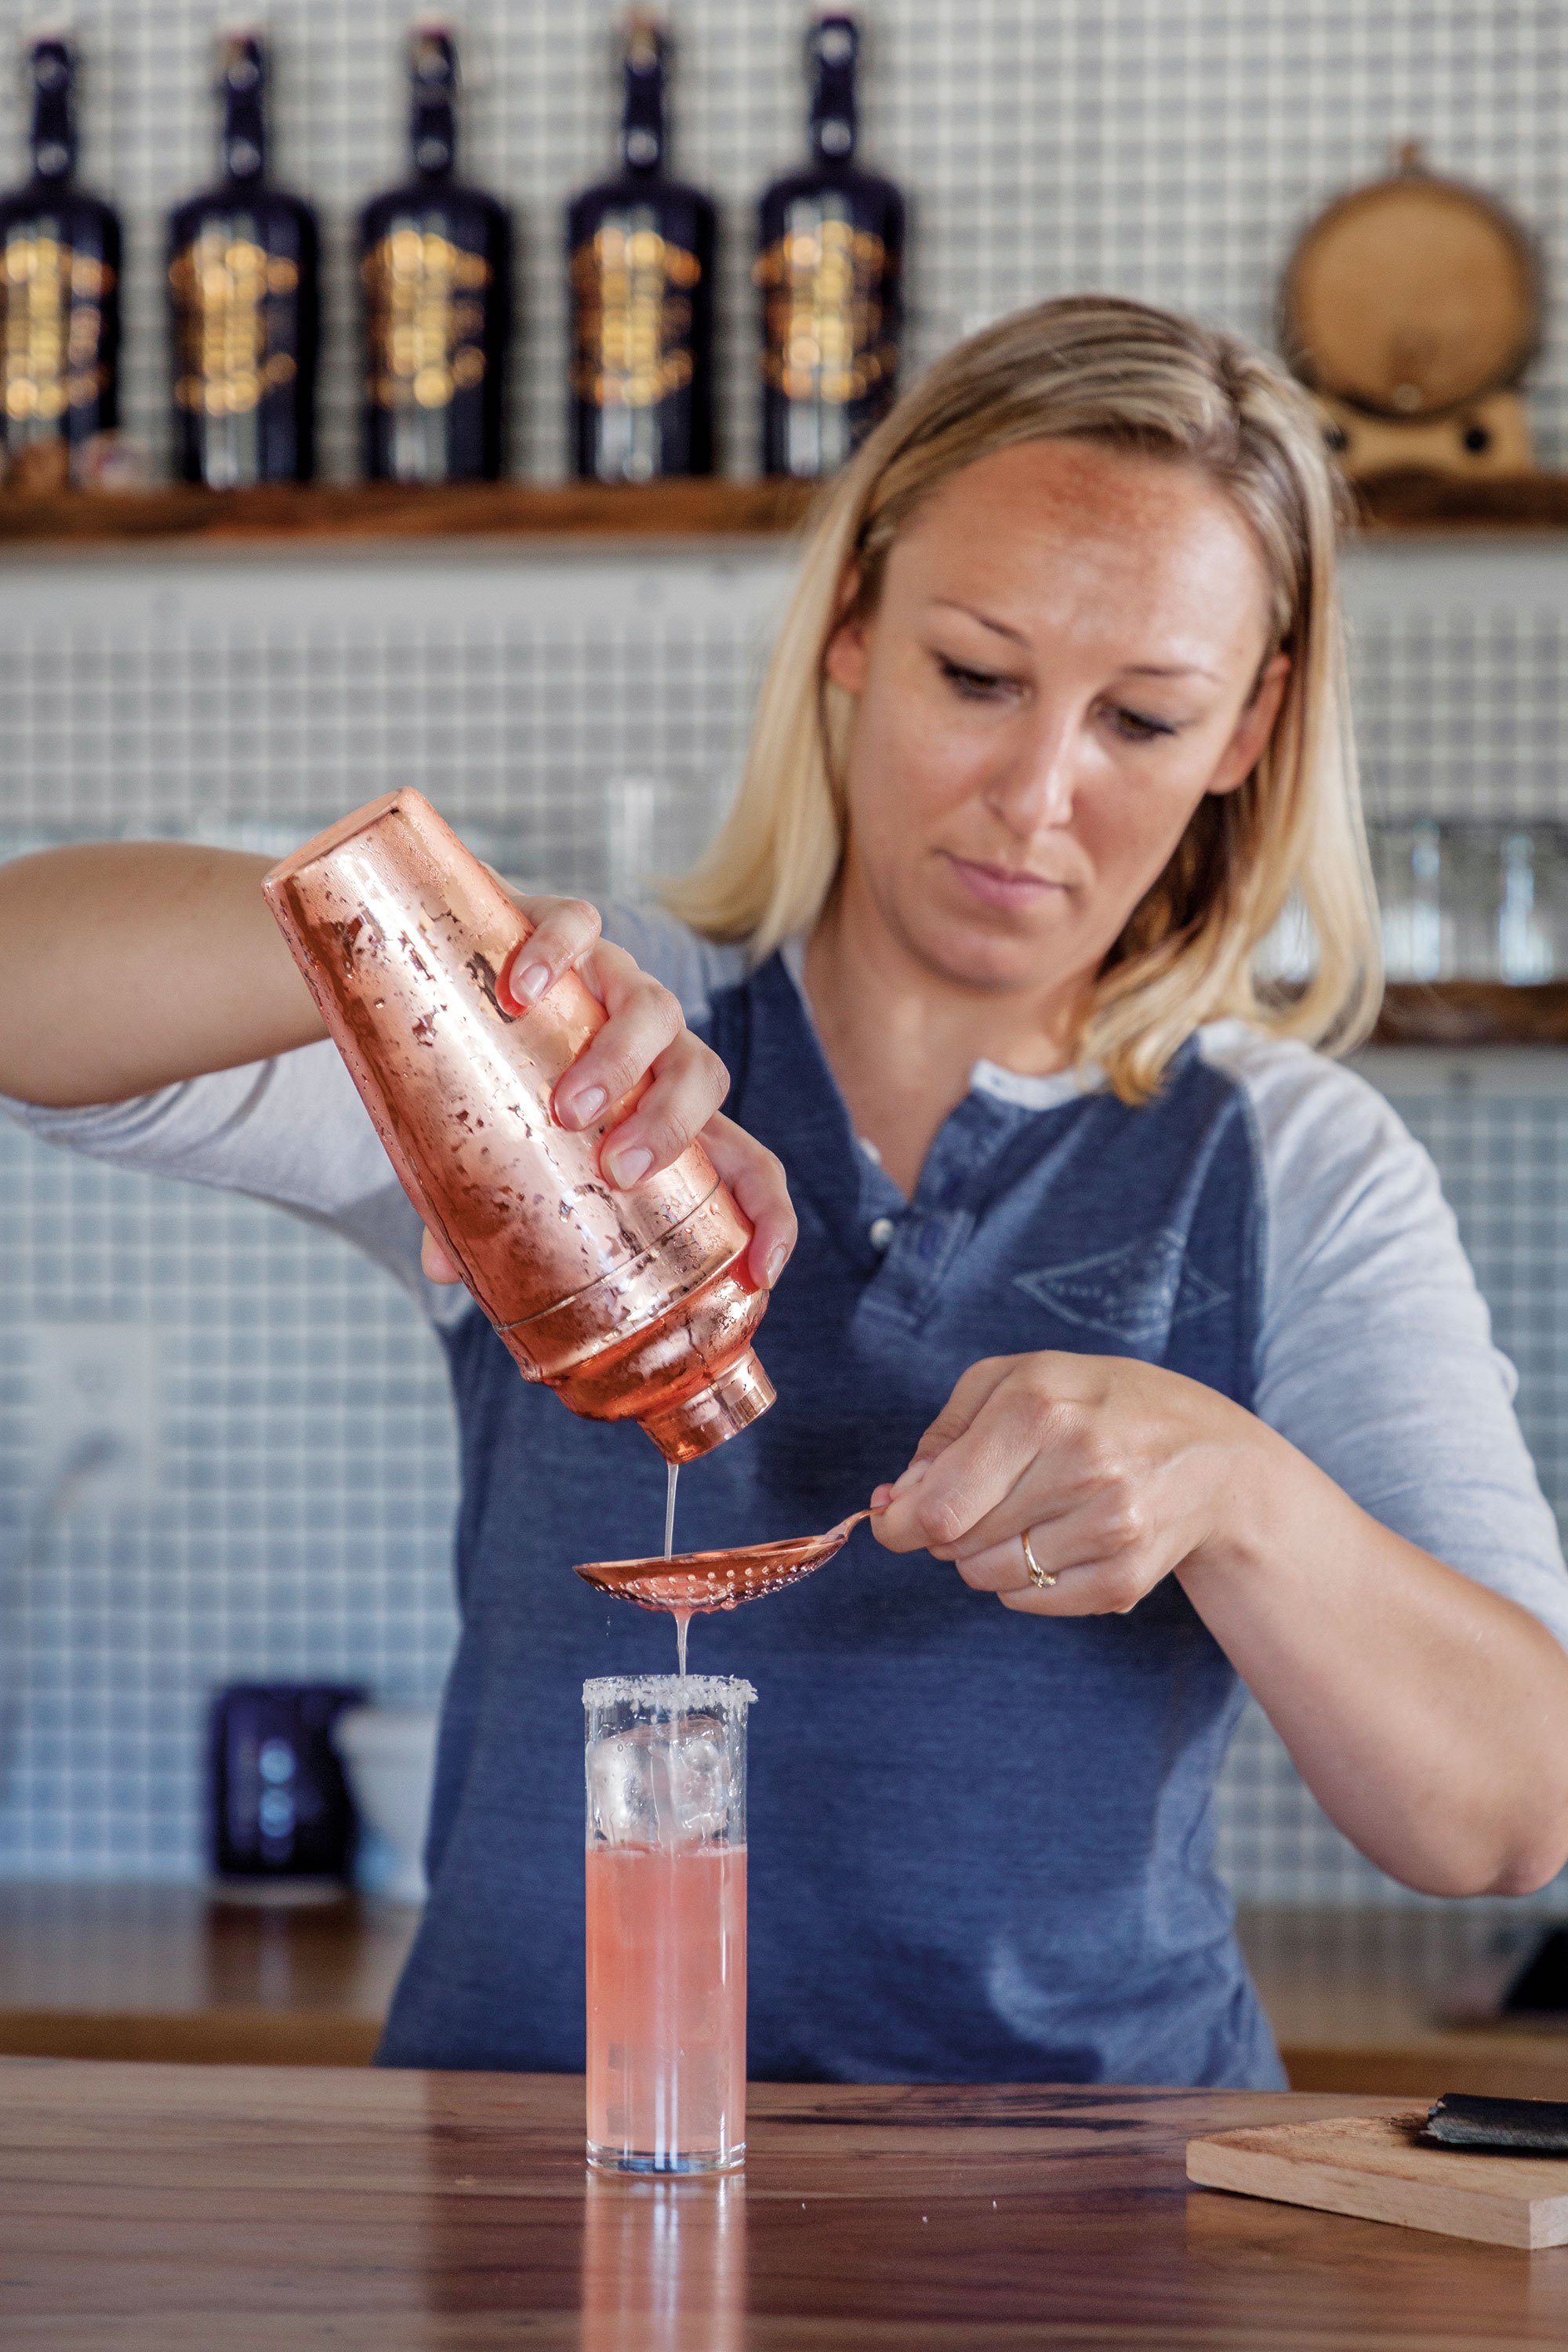 """TEXASHIGHWAYS.COM:  SPRING BREAK ON DISTILLERY ROW   - April 11, 2019  """"It's called Dripping Springs for a reason,""""...   Read More"""